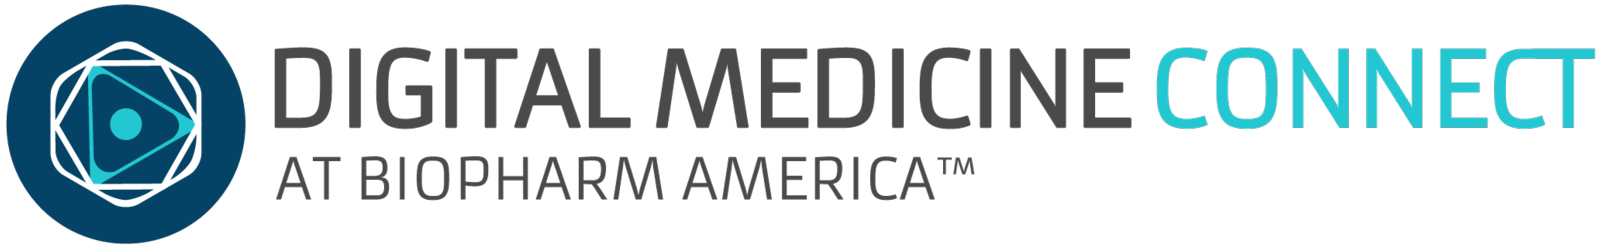 Digital Medicine Connect at BioPharm America | September 15, 2016 | Boston, MA